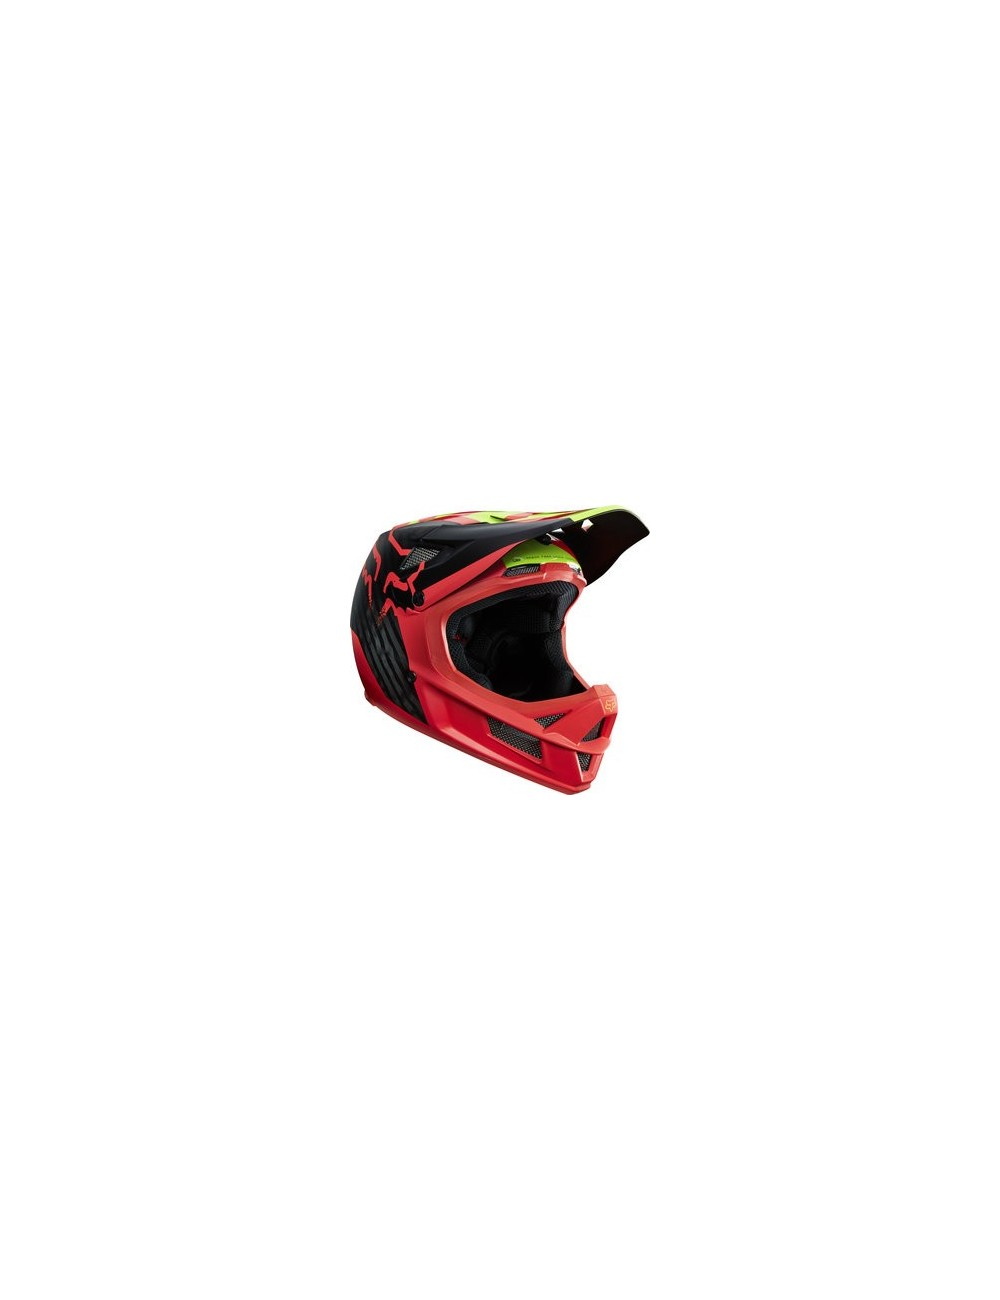 CAPACETE FOX RAMPAGE PRO CARBON (RED) T-M